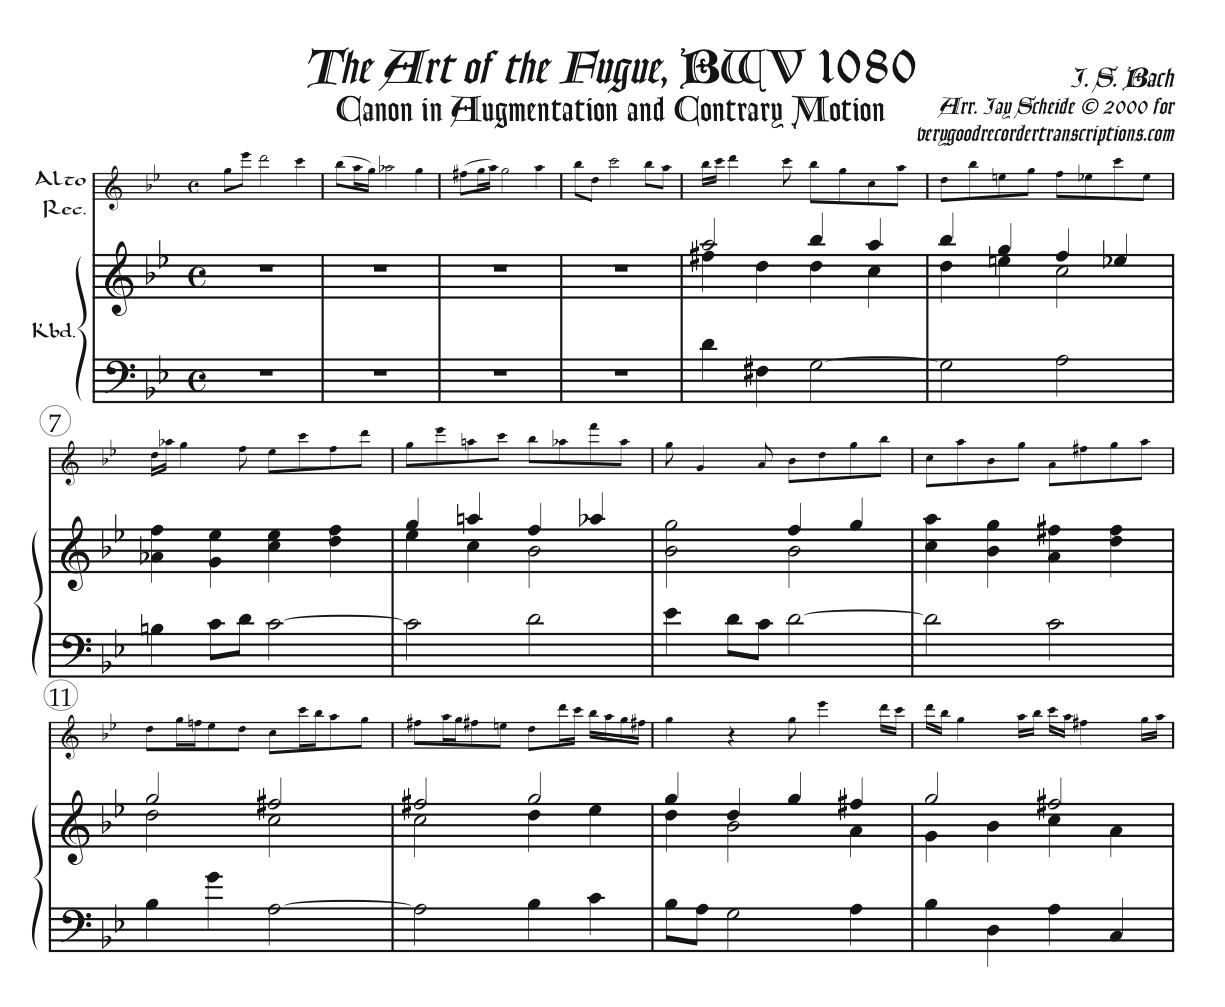 All Four Canons from the Art of the Fugue